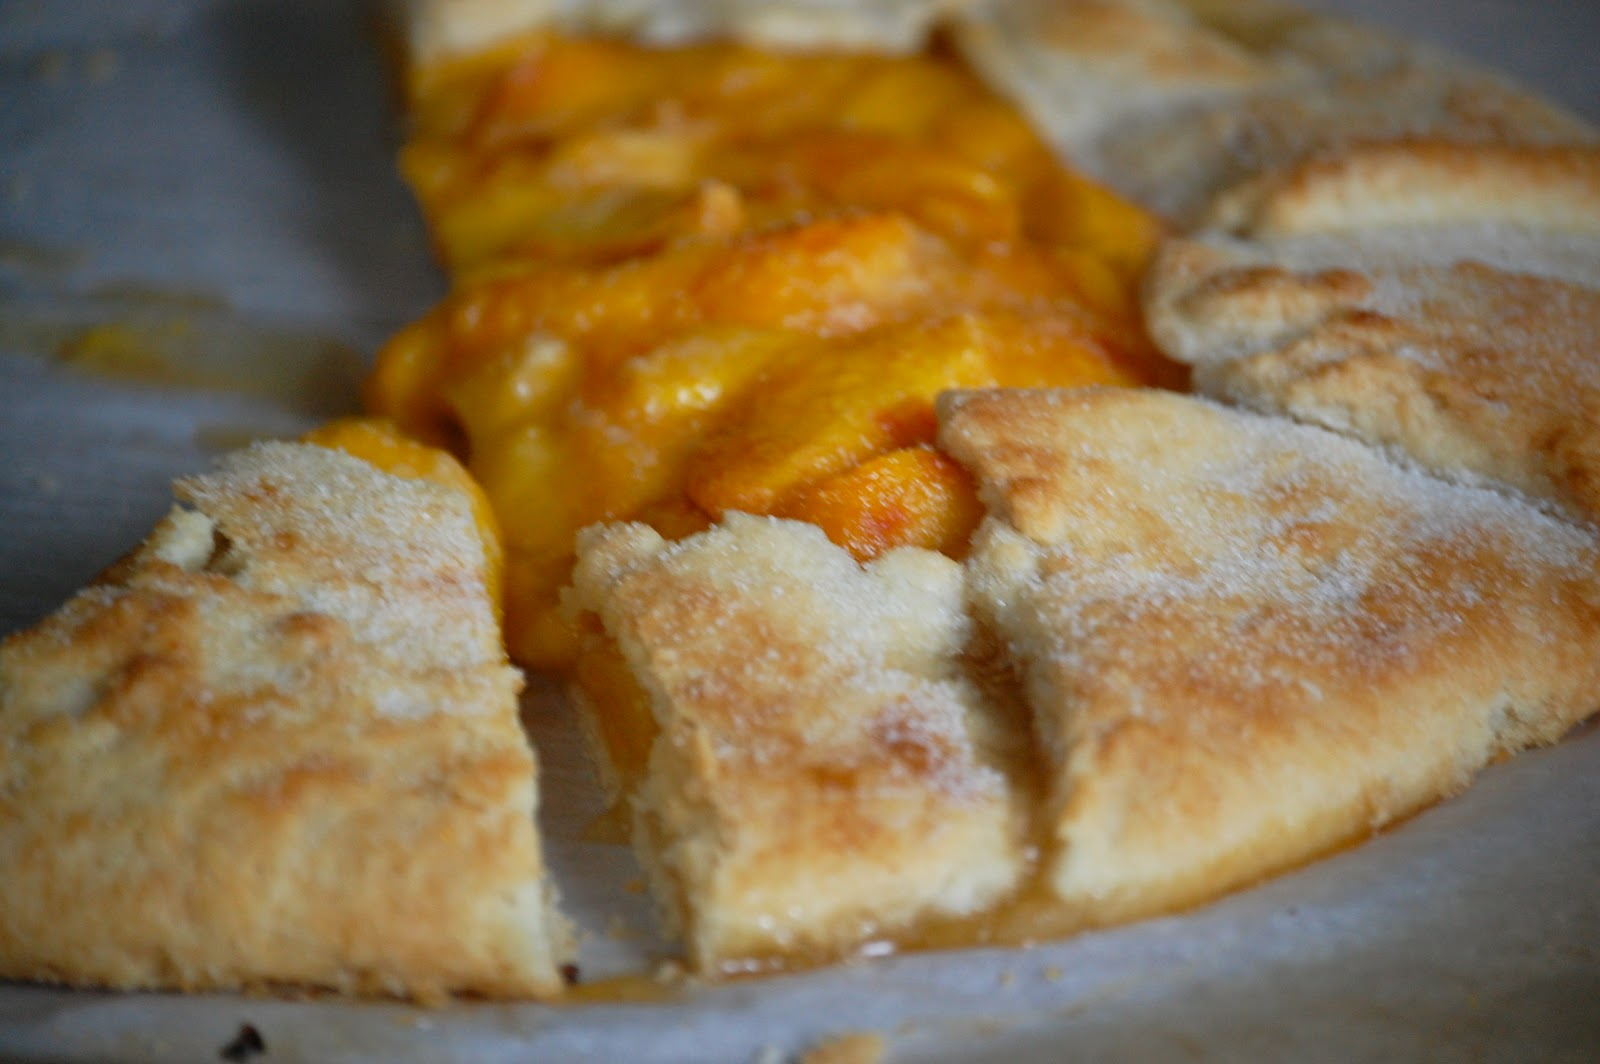 Heritage schoolhouse fresh peach galette for 1 tablespoon of butter